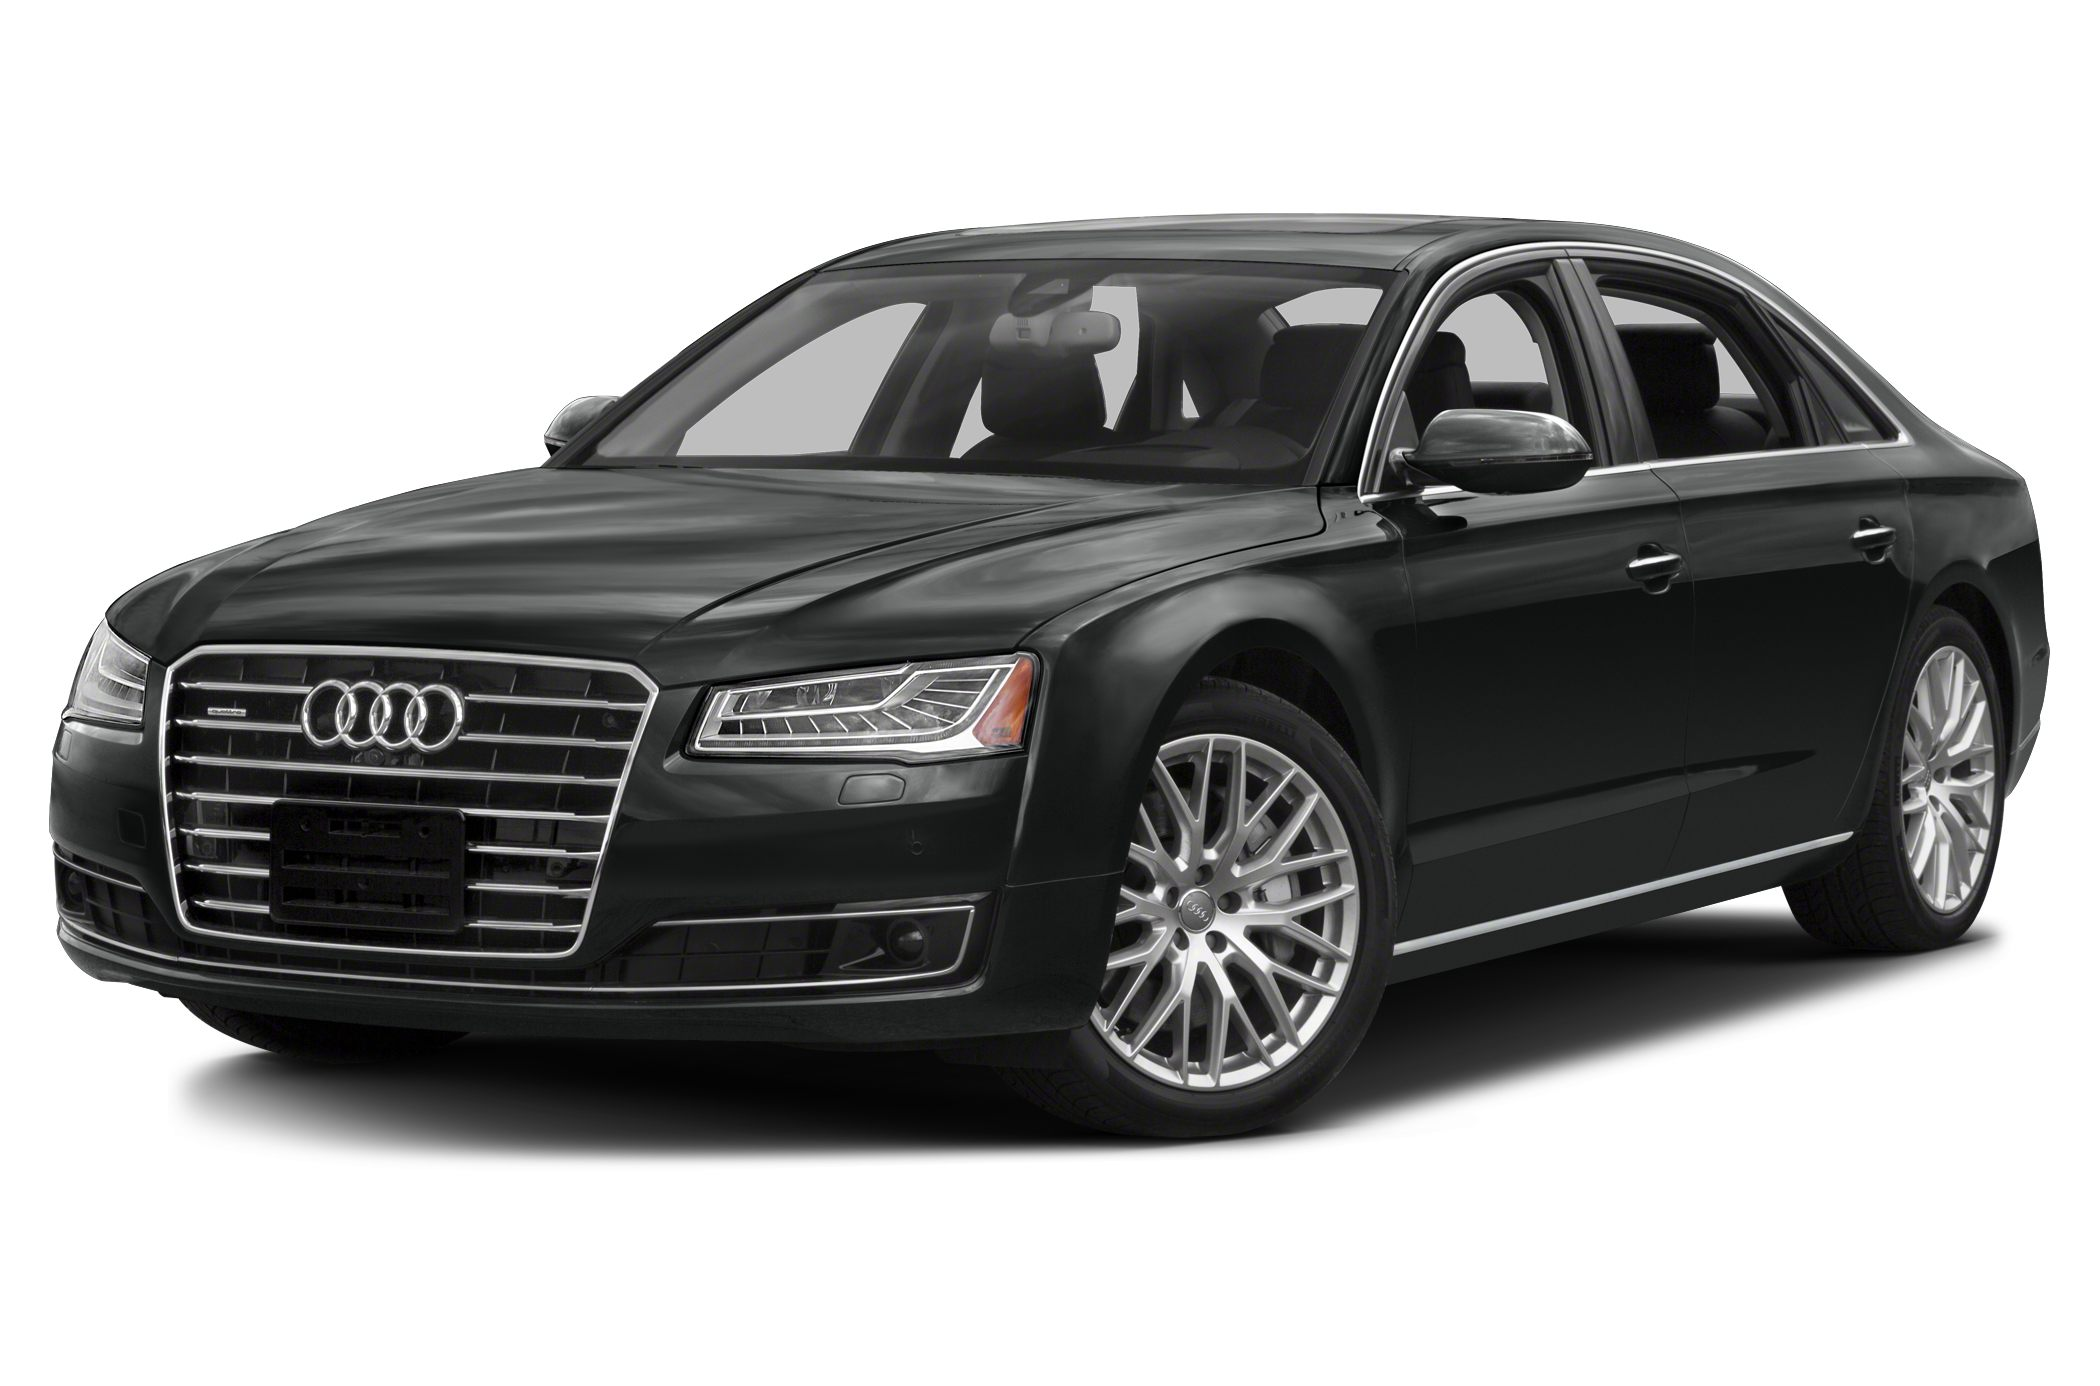 Audi A8 News Photos And Buying Information Autoblog